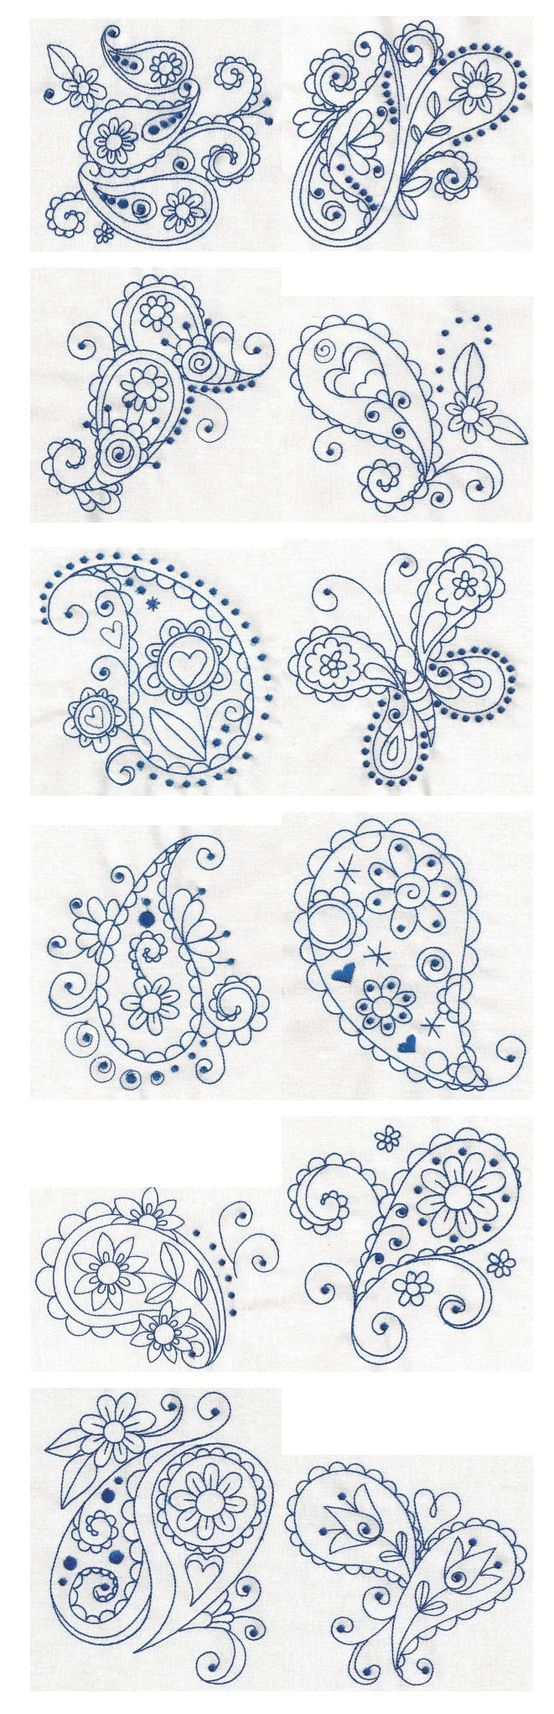 Paisley ~ Tattoo ideas - cute-tattoo.com